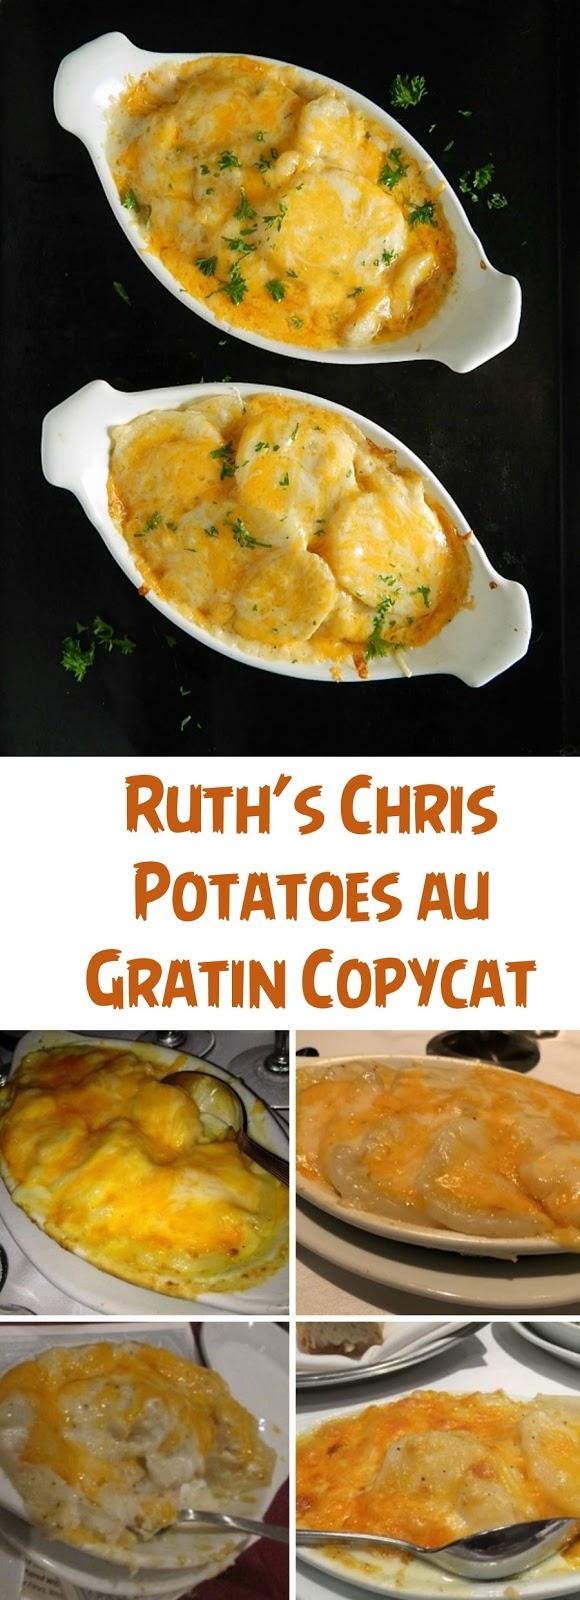 Ruth's Chris Potatoes au Gratin Copycat